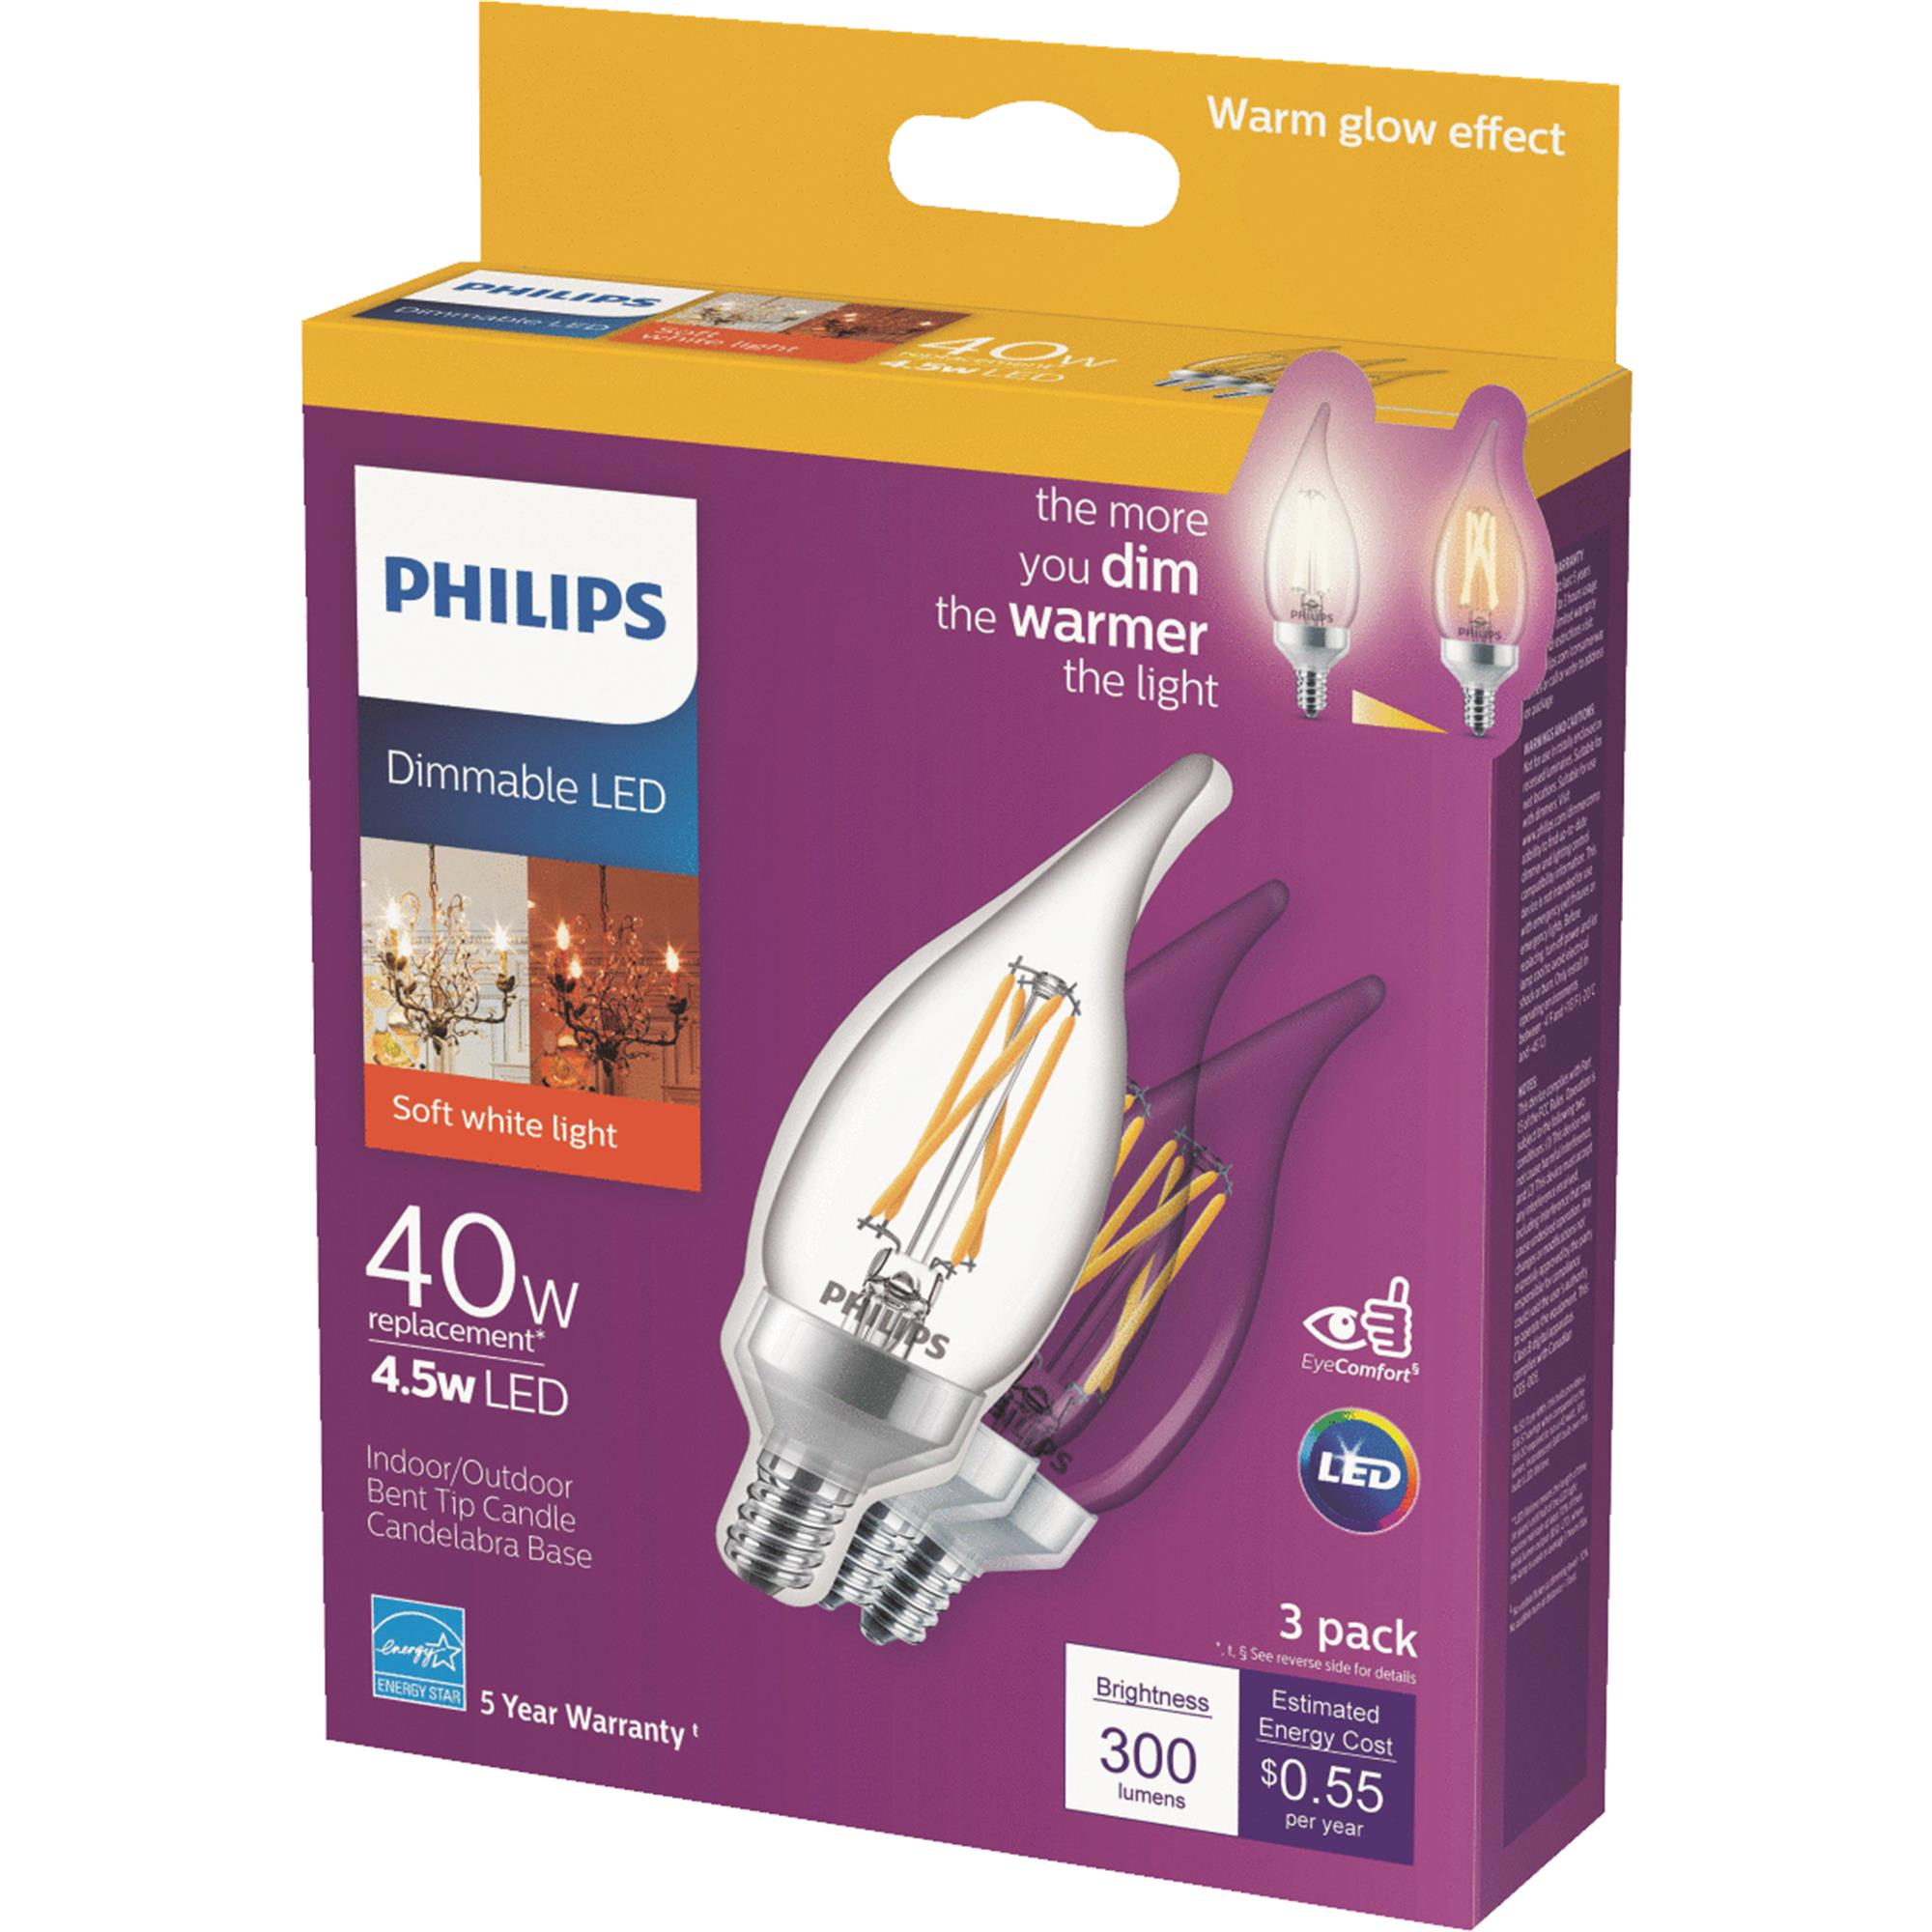 Philips Warm Glow BA11 Candelabra Dimmable LED Decorative Light Bulb